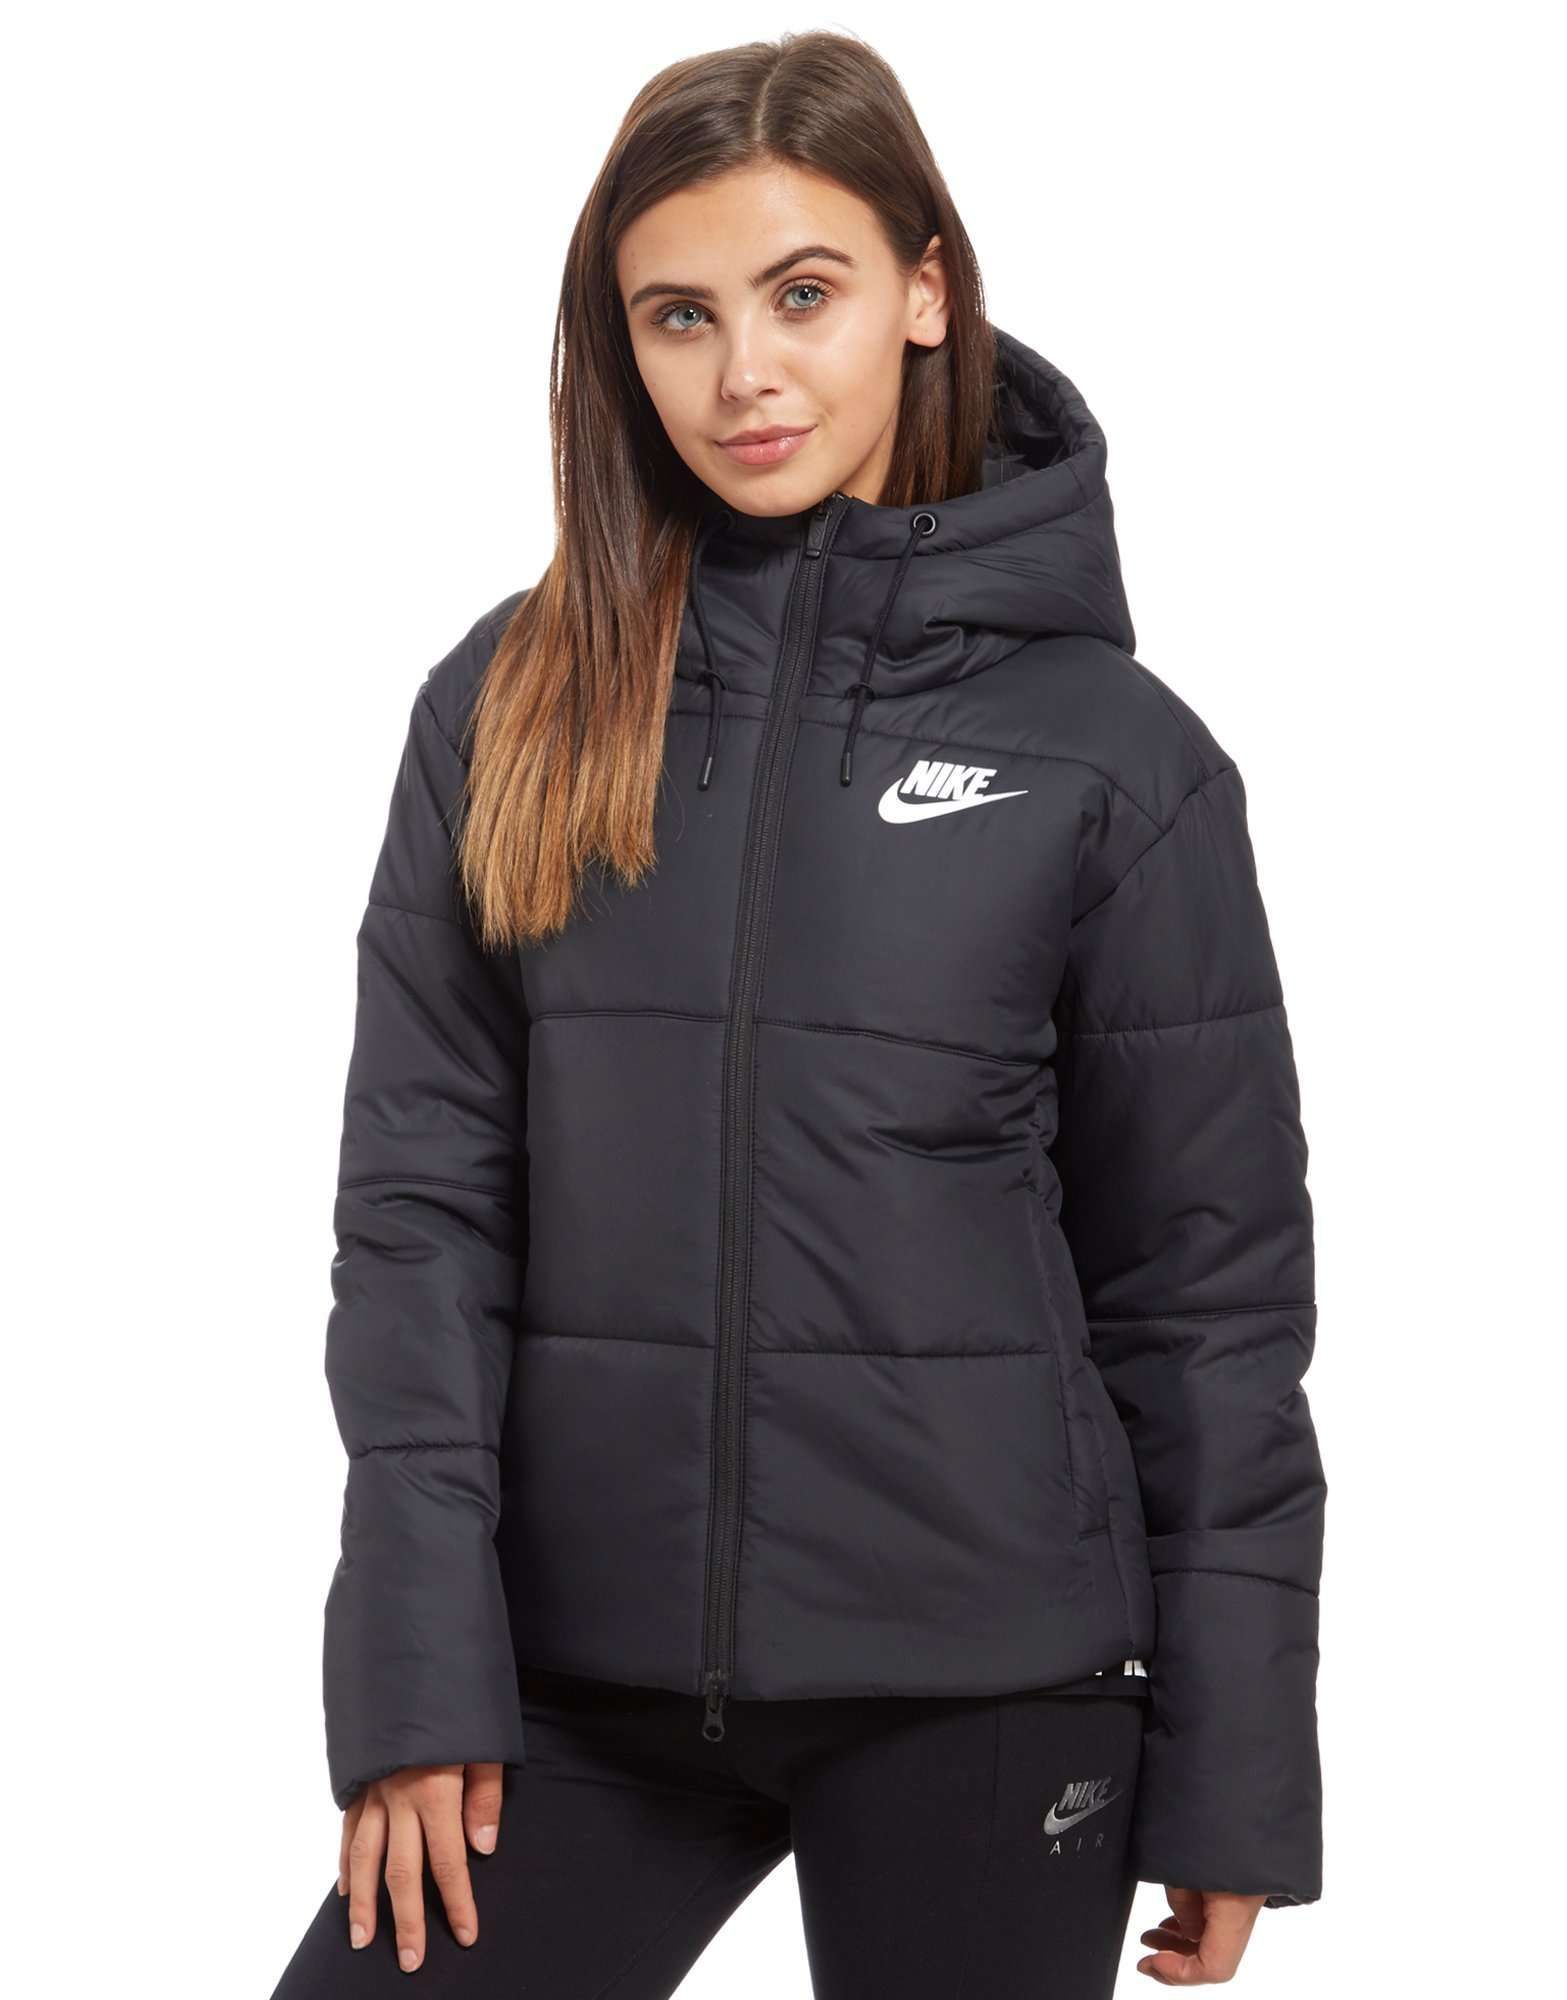 20b08a0f34 Nike Padded Jacket - Shop online for Nike Padded Jacket with JD Sports, the  UK's